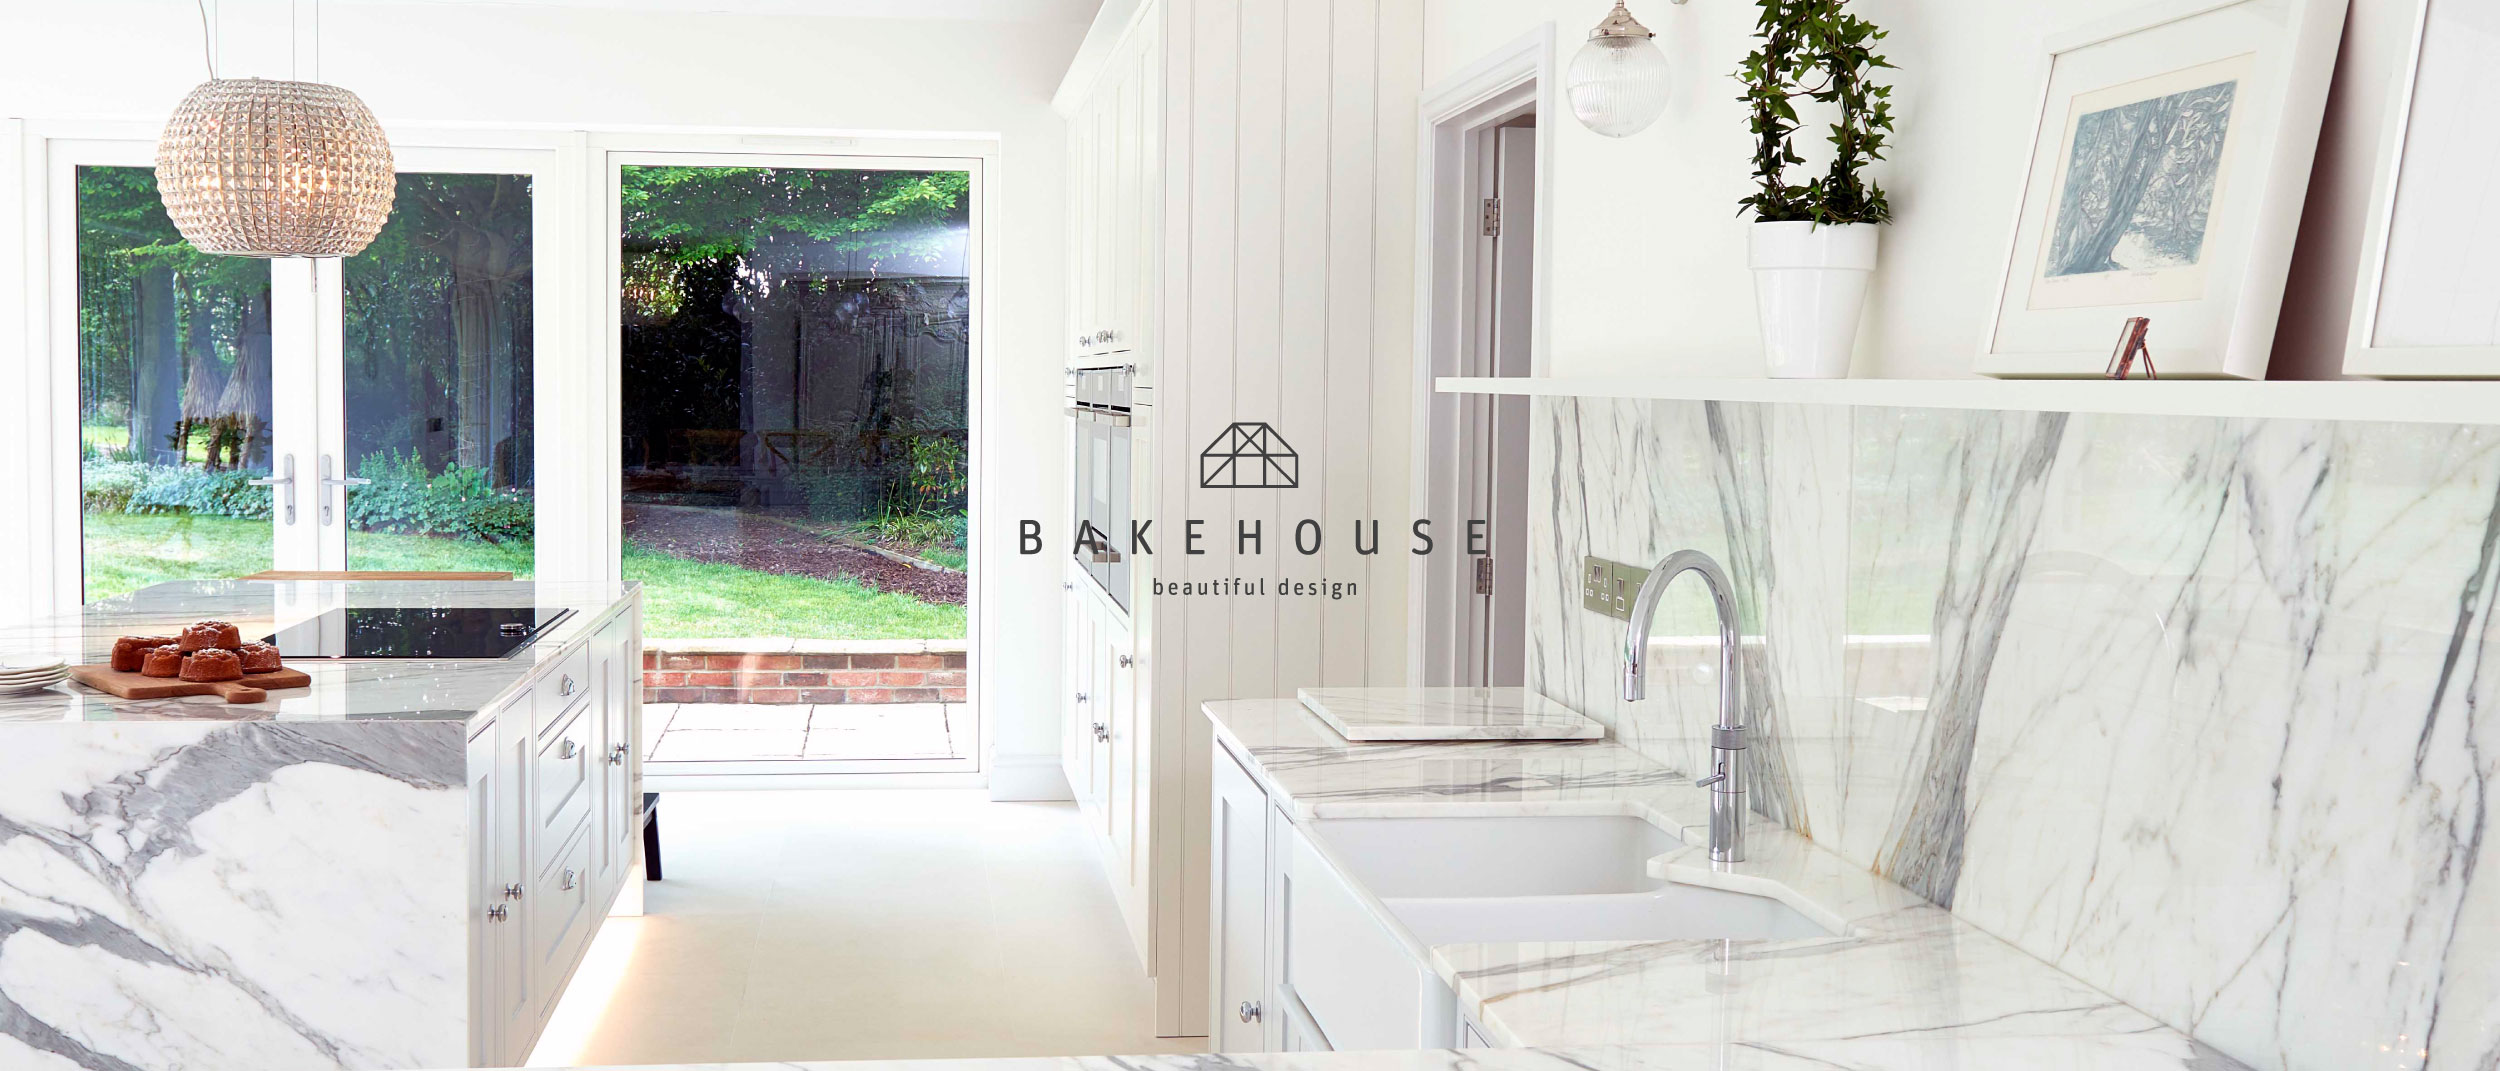 Bakehouse-Kitchens.jpg